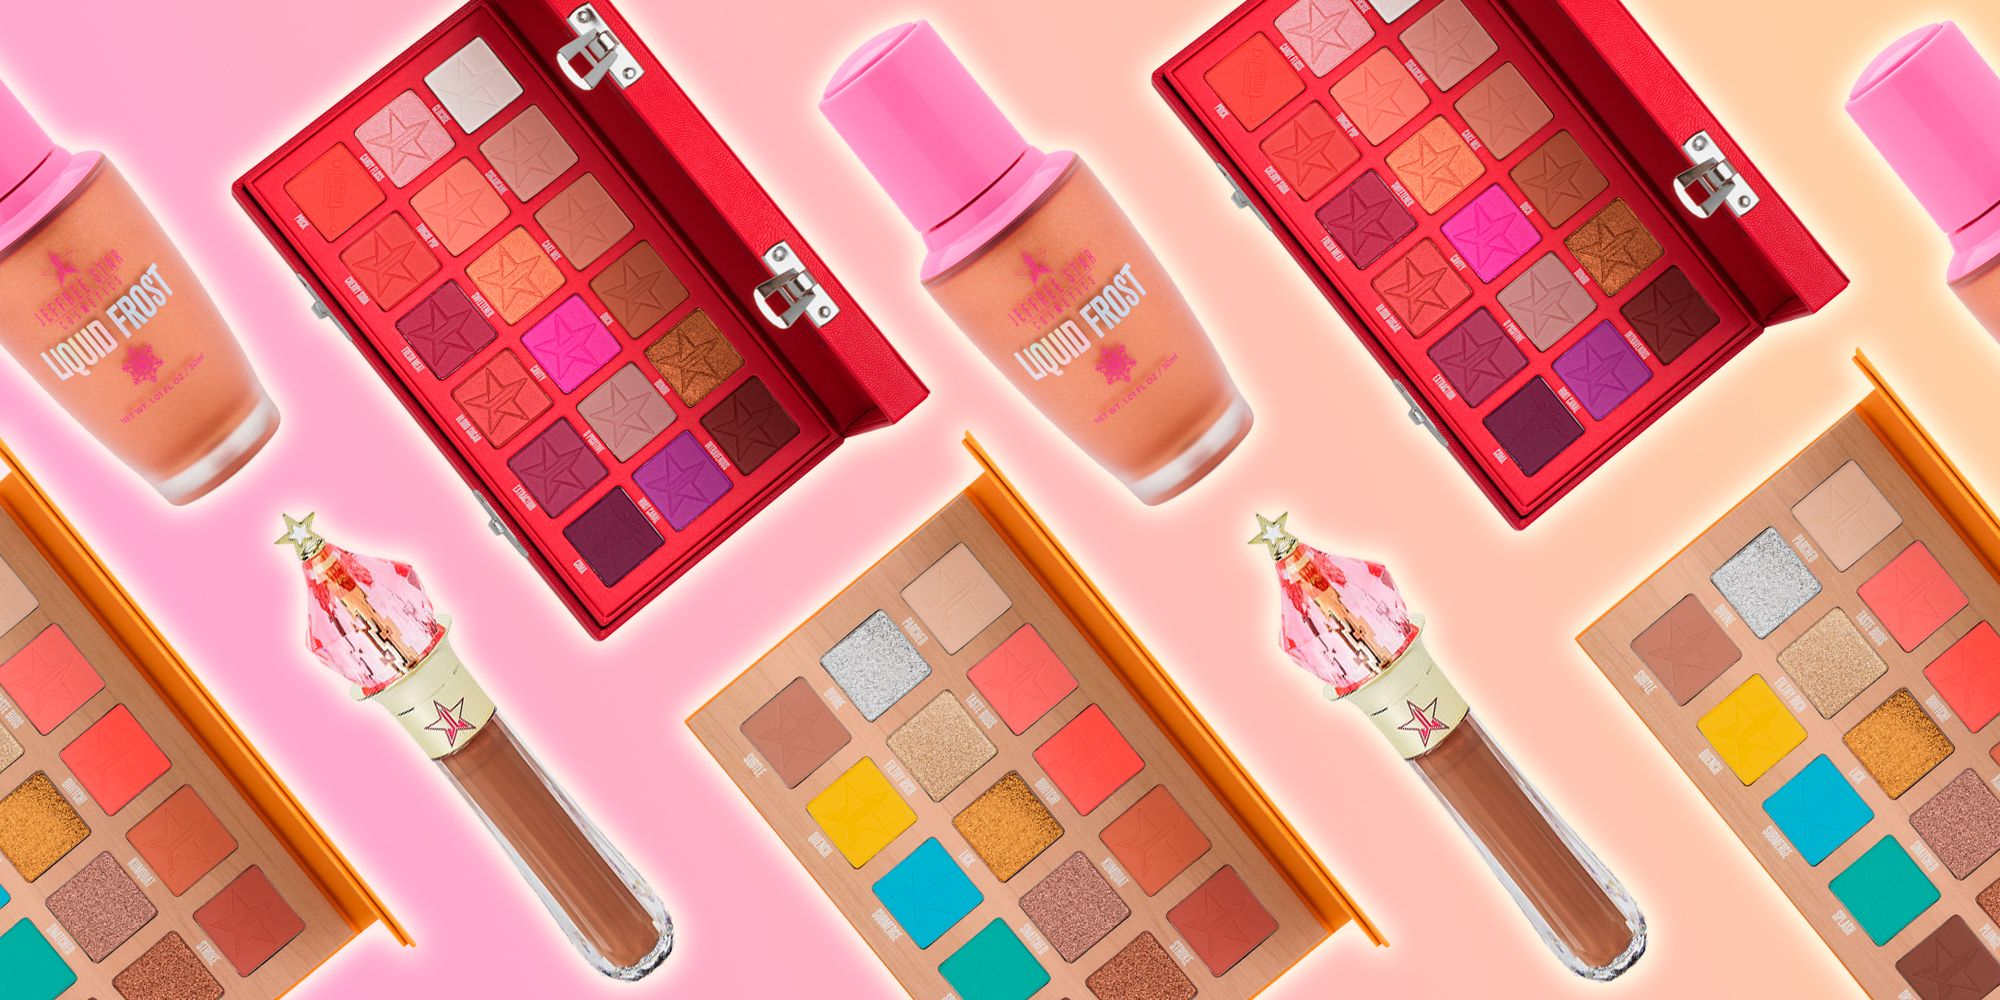 7 Jeffree Star Cosmetics products we absolutely could not live without